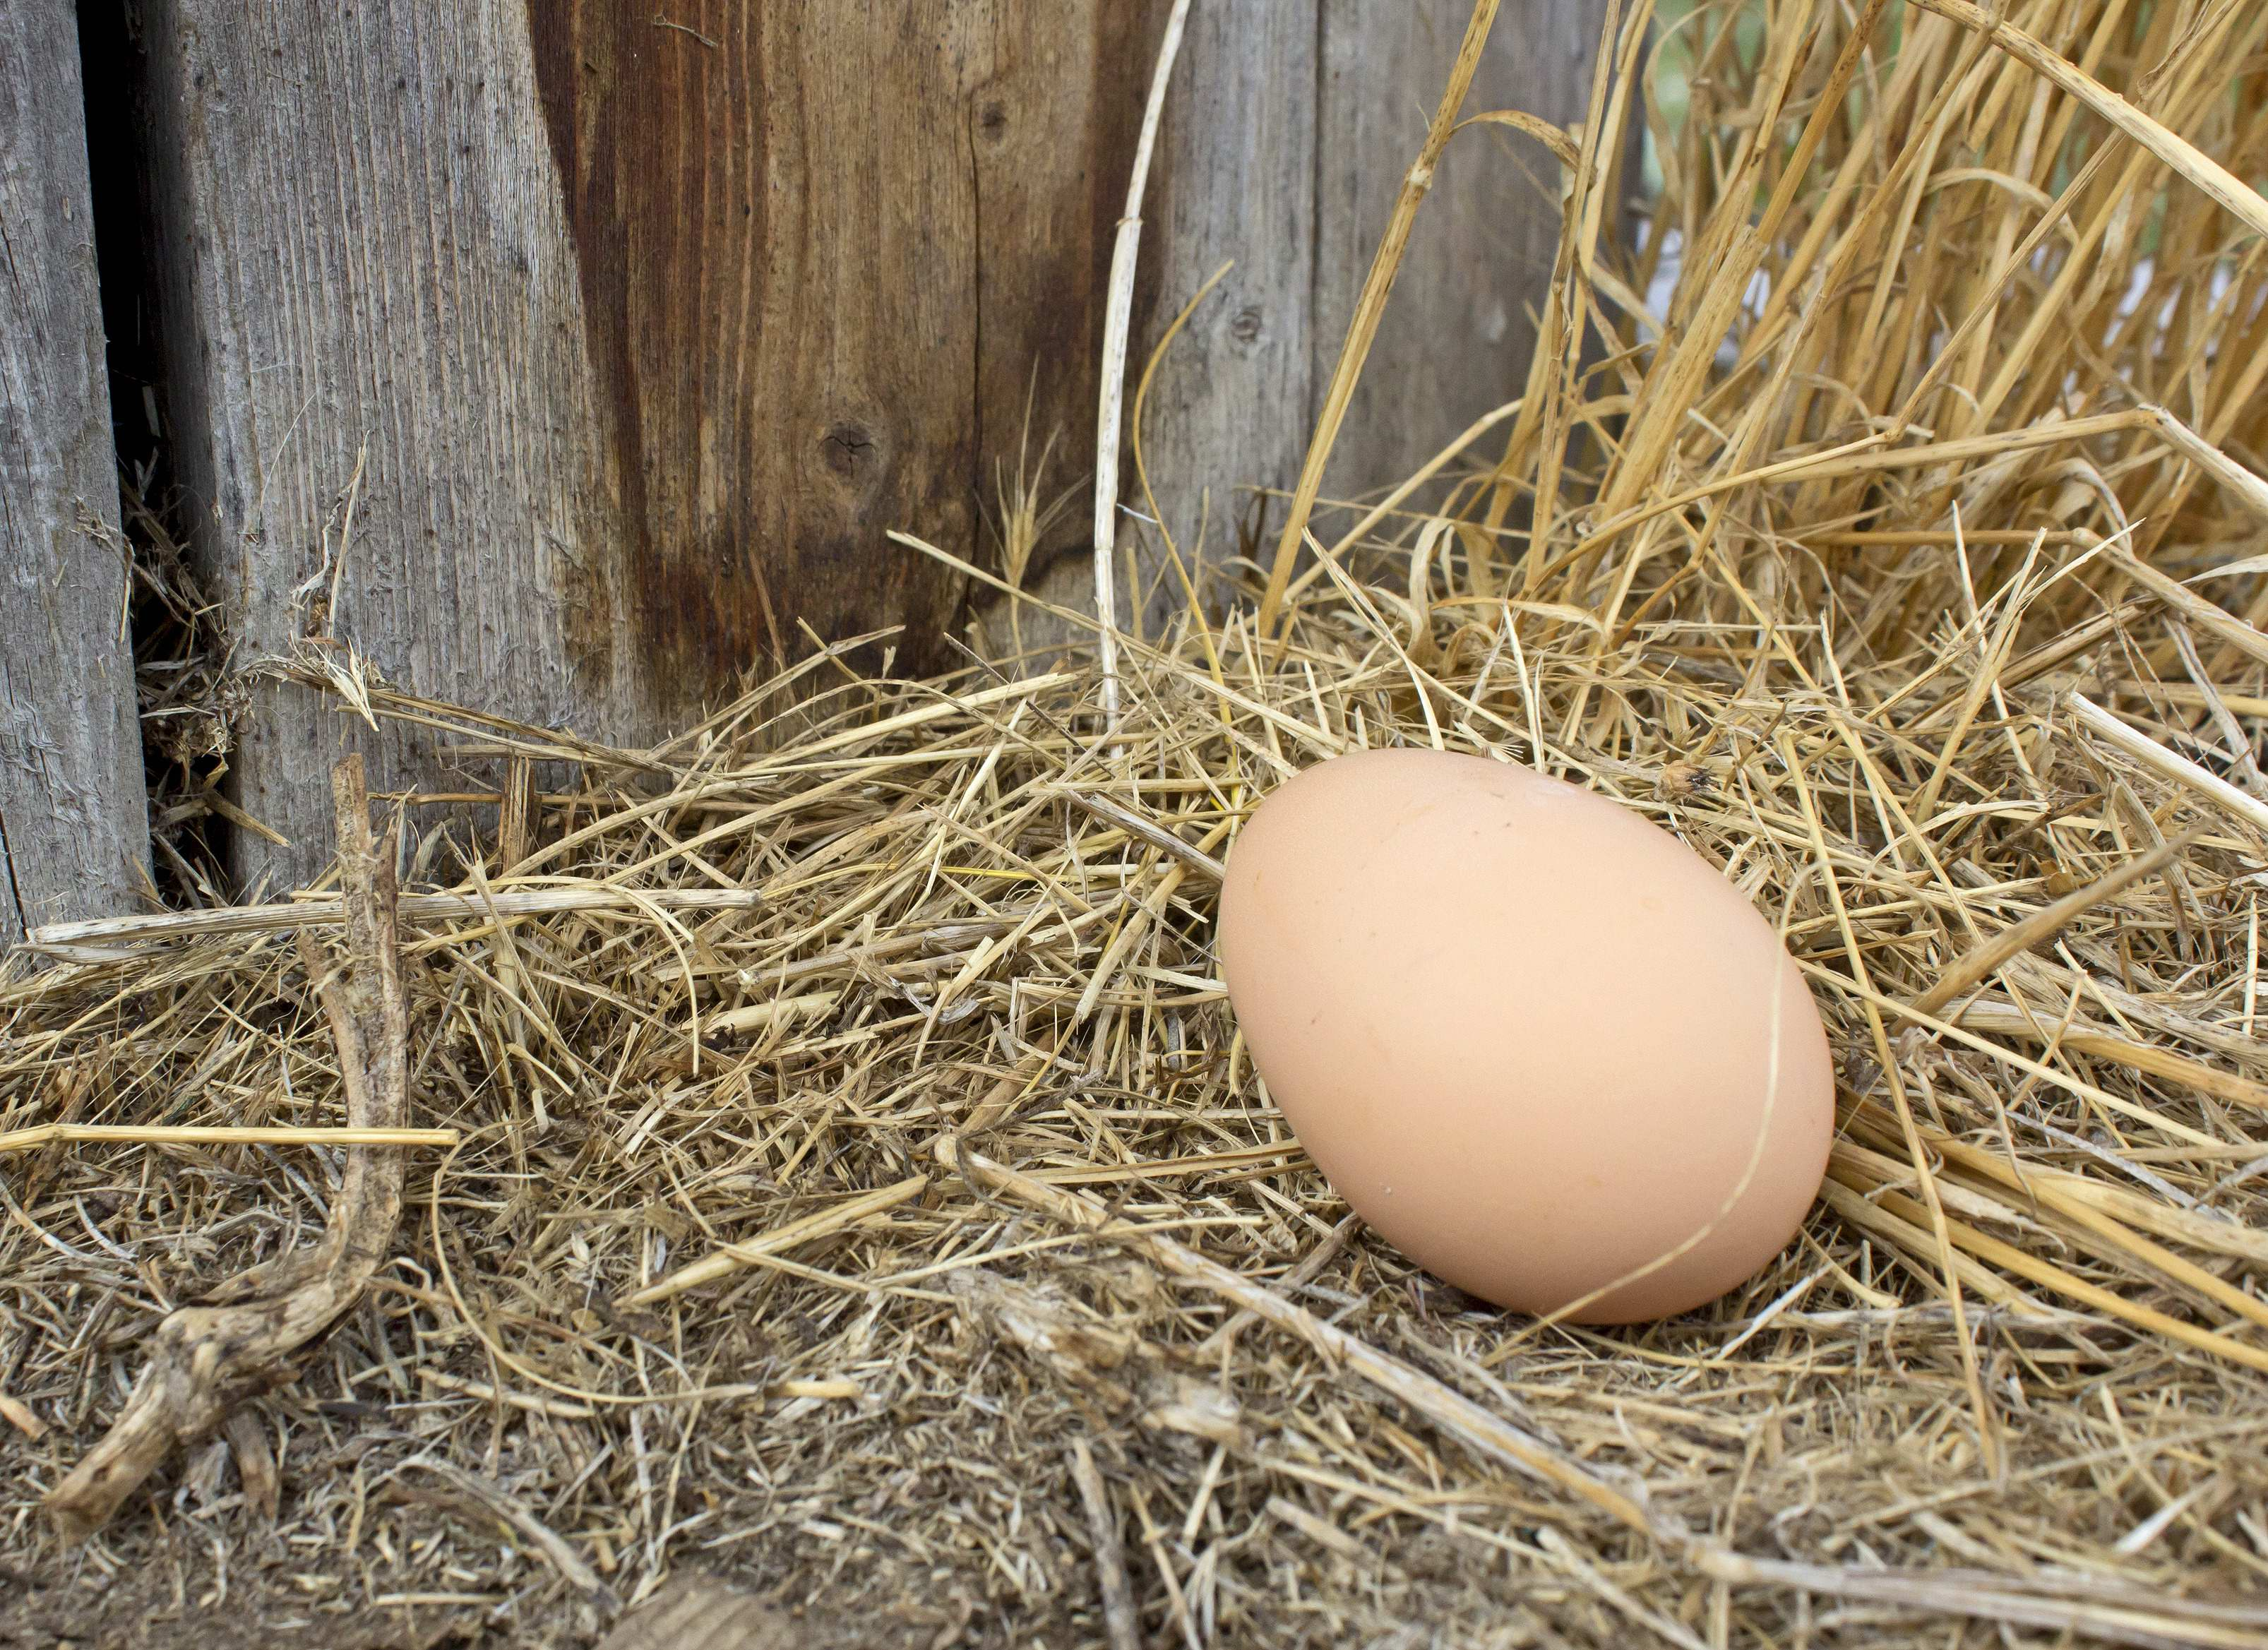 What should I do when my chickens lay eggs on the floor instead of in nests?